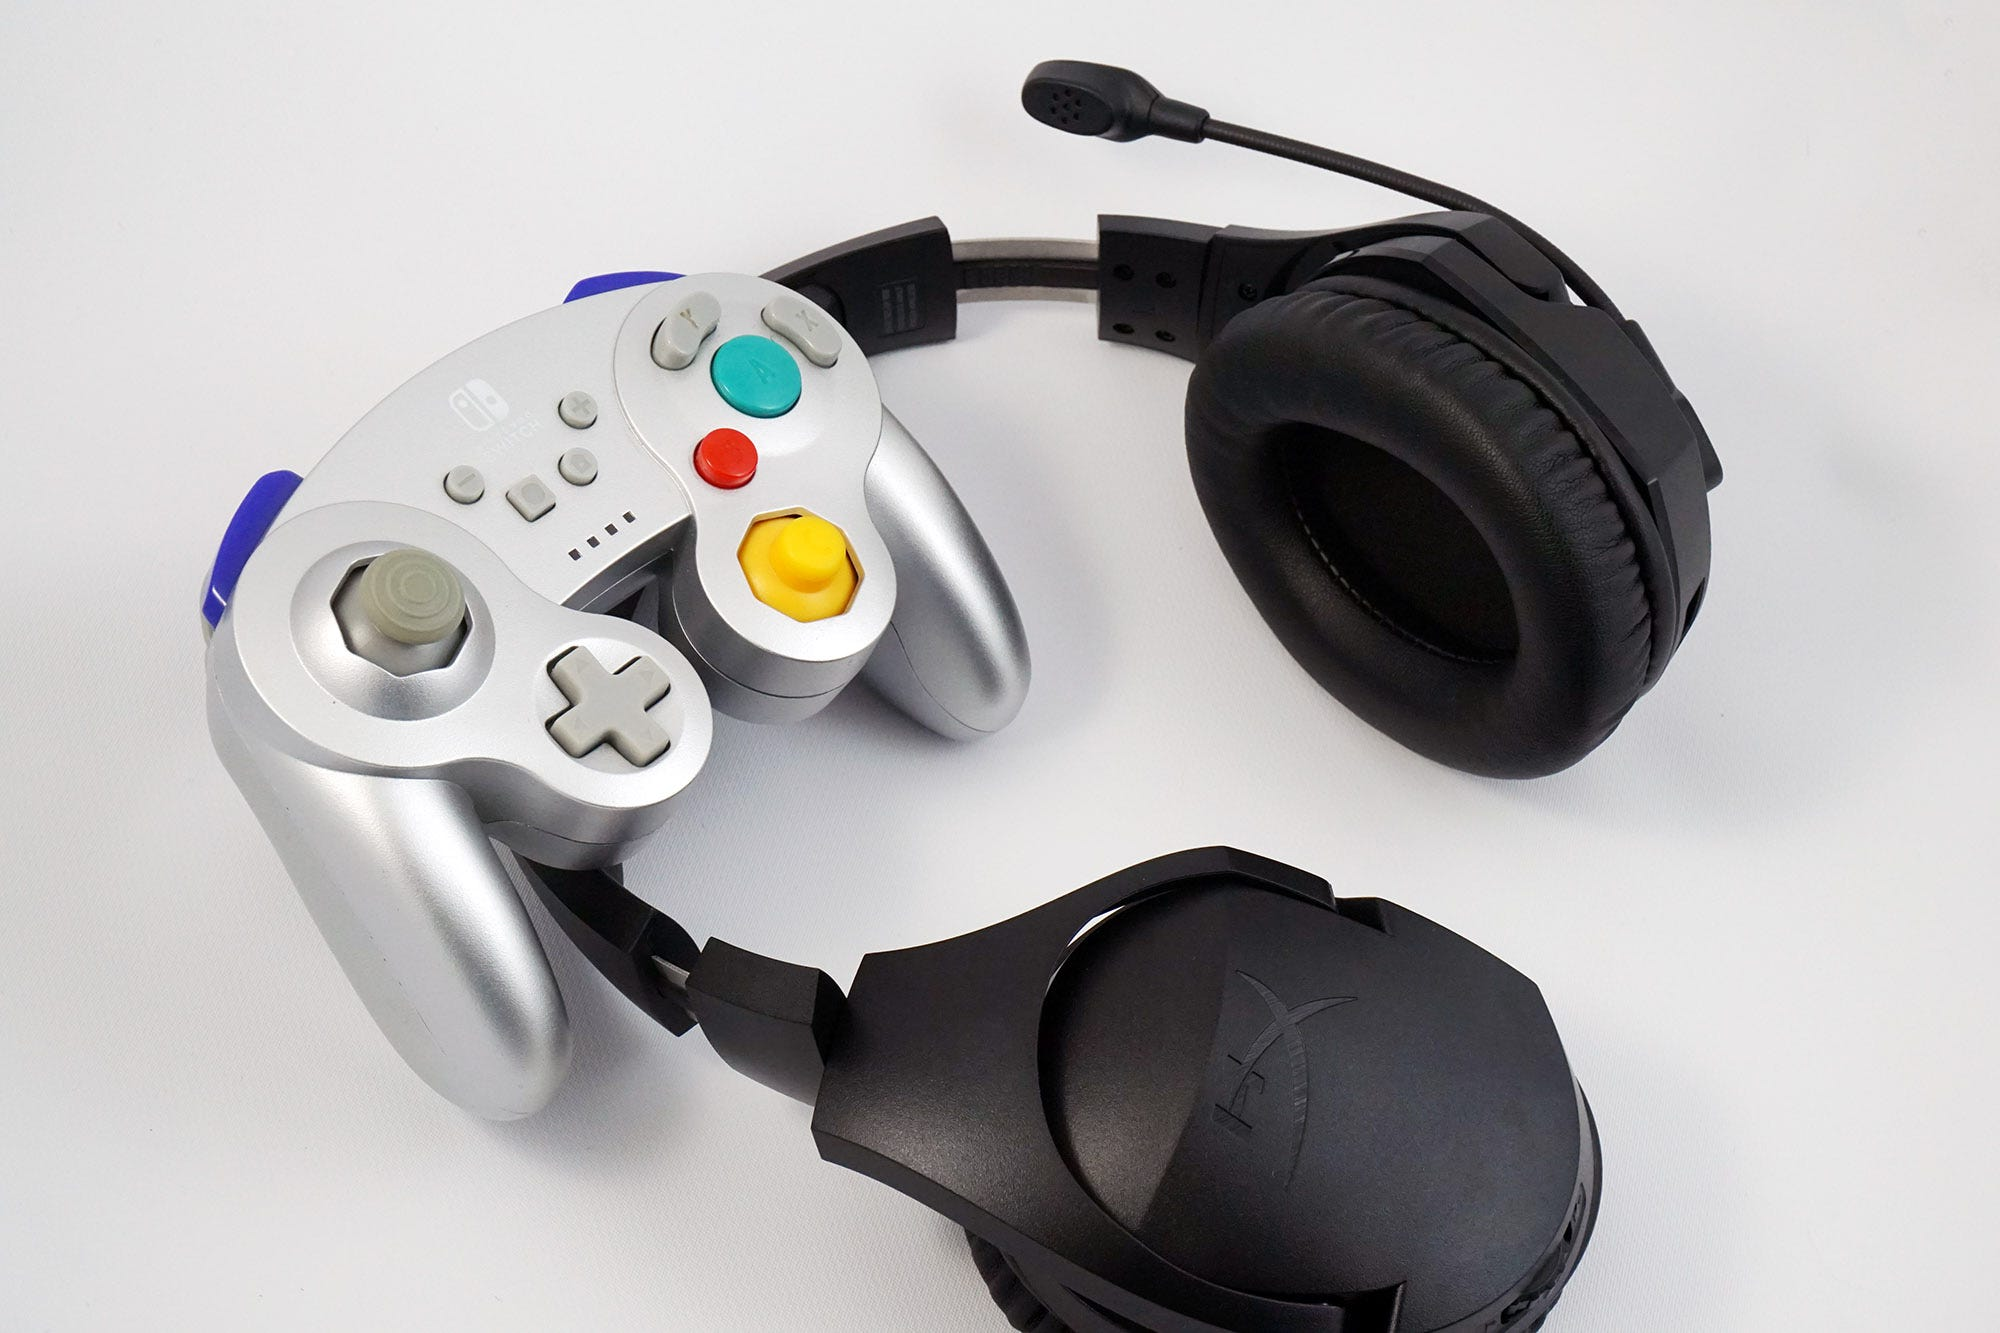 The Cloud Stinger makes a good, if simple, addition to your PC or console audio setup.